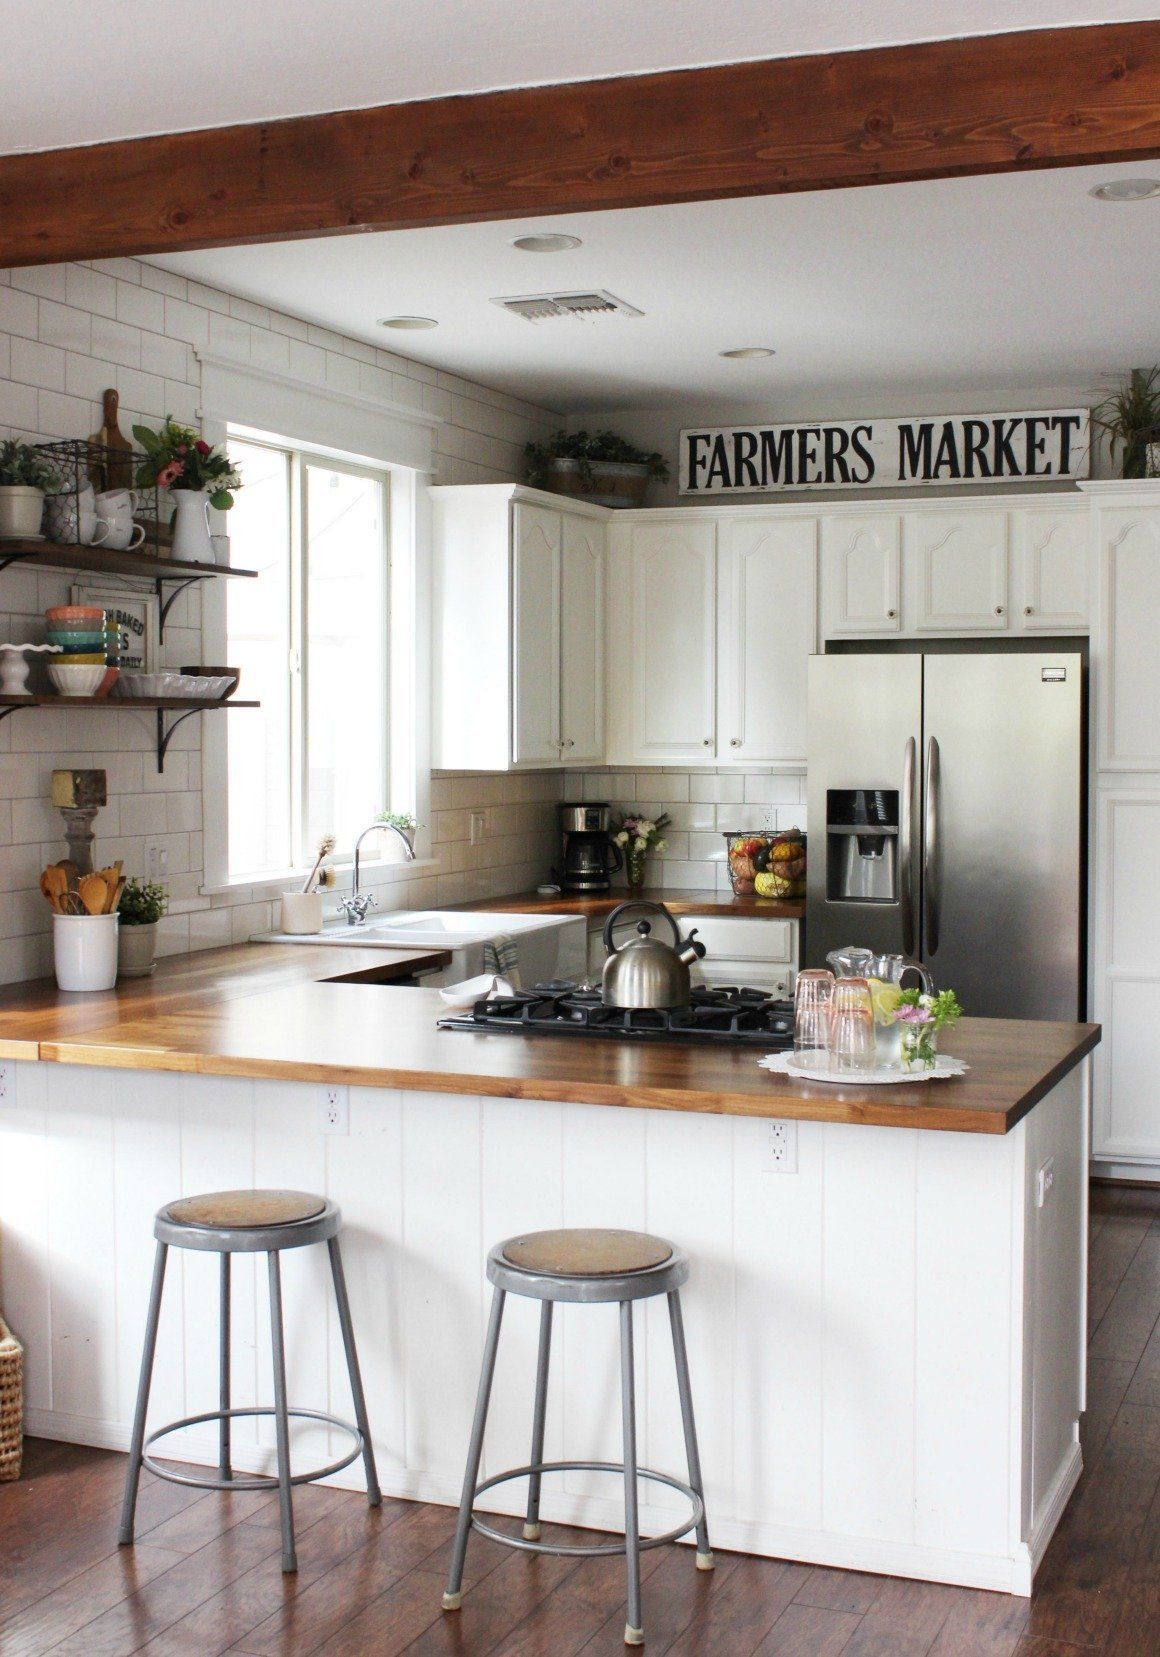 Perfect Kitchen Design Ideas For Small Areas That You Need To Try14